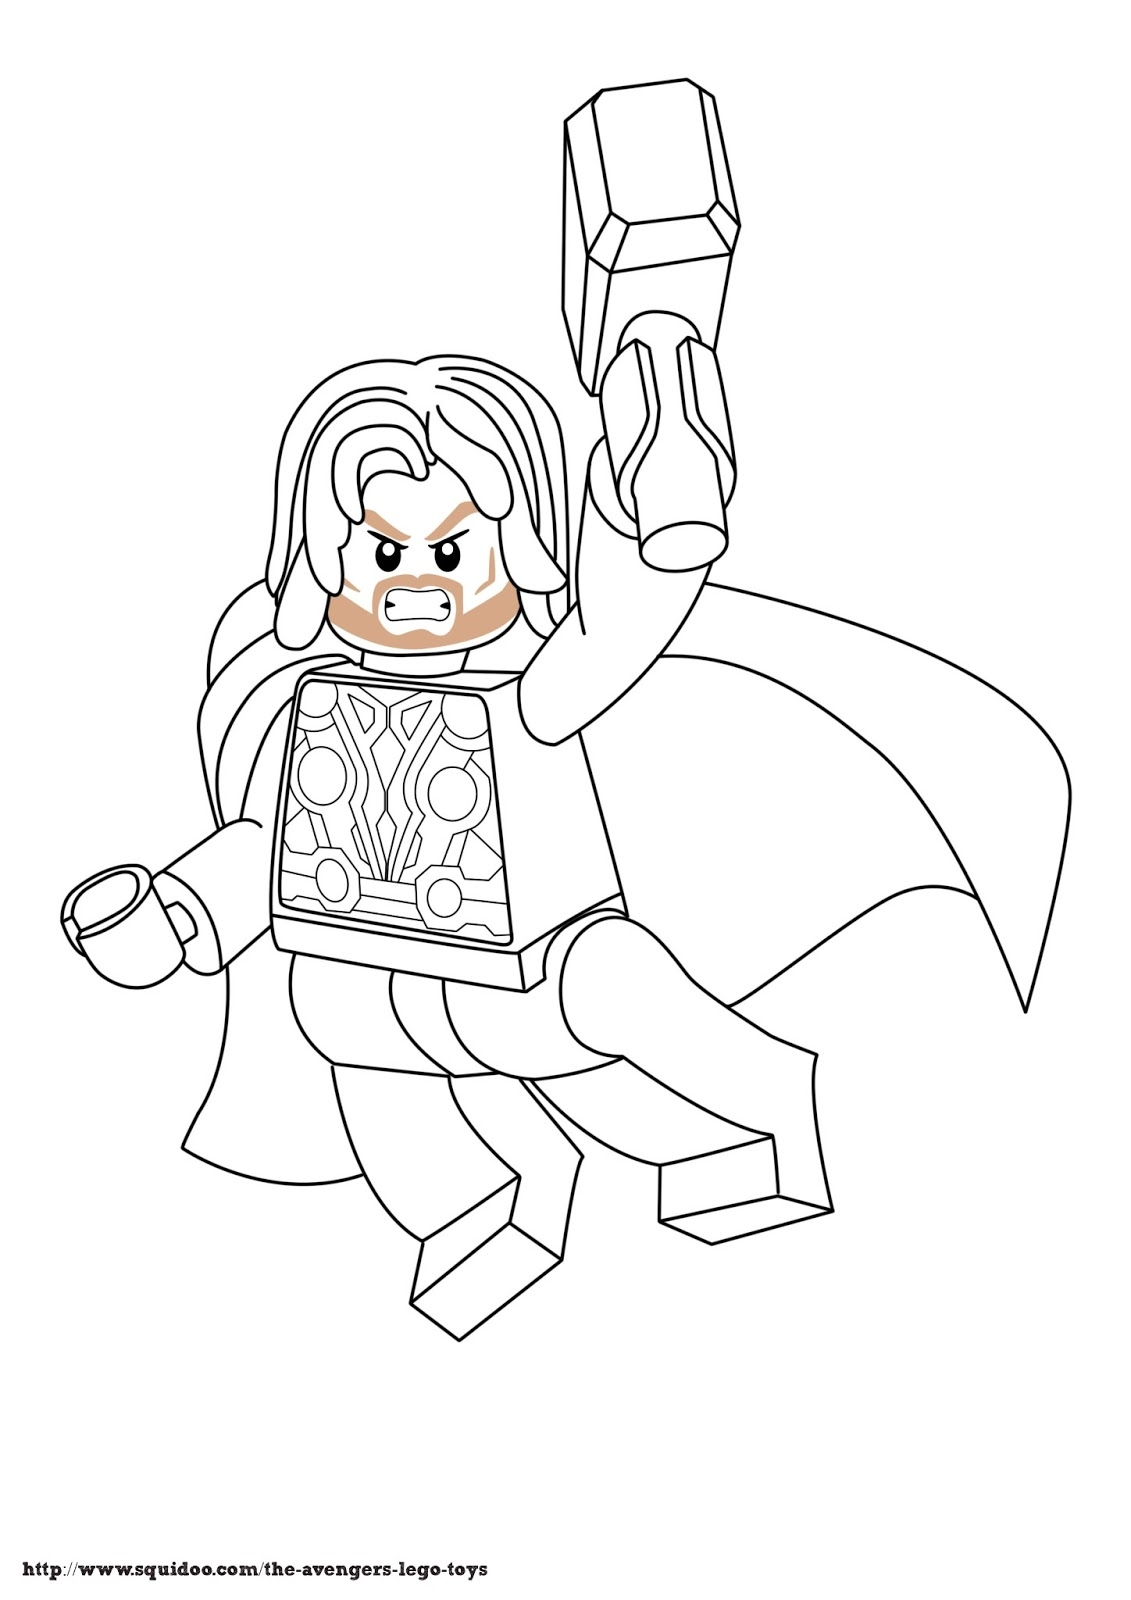 lego avengers coloring pages - lego avengers coloring page